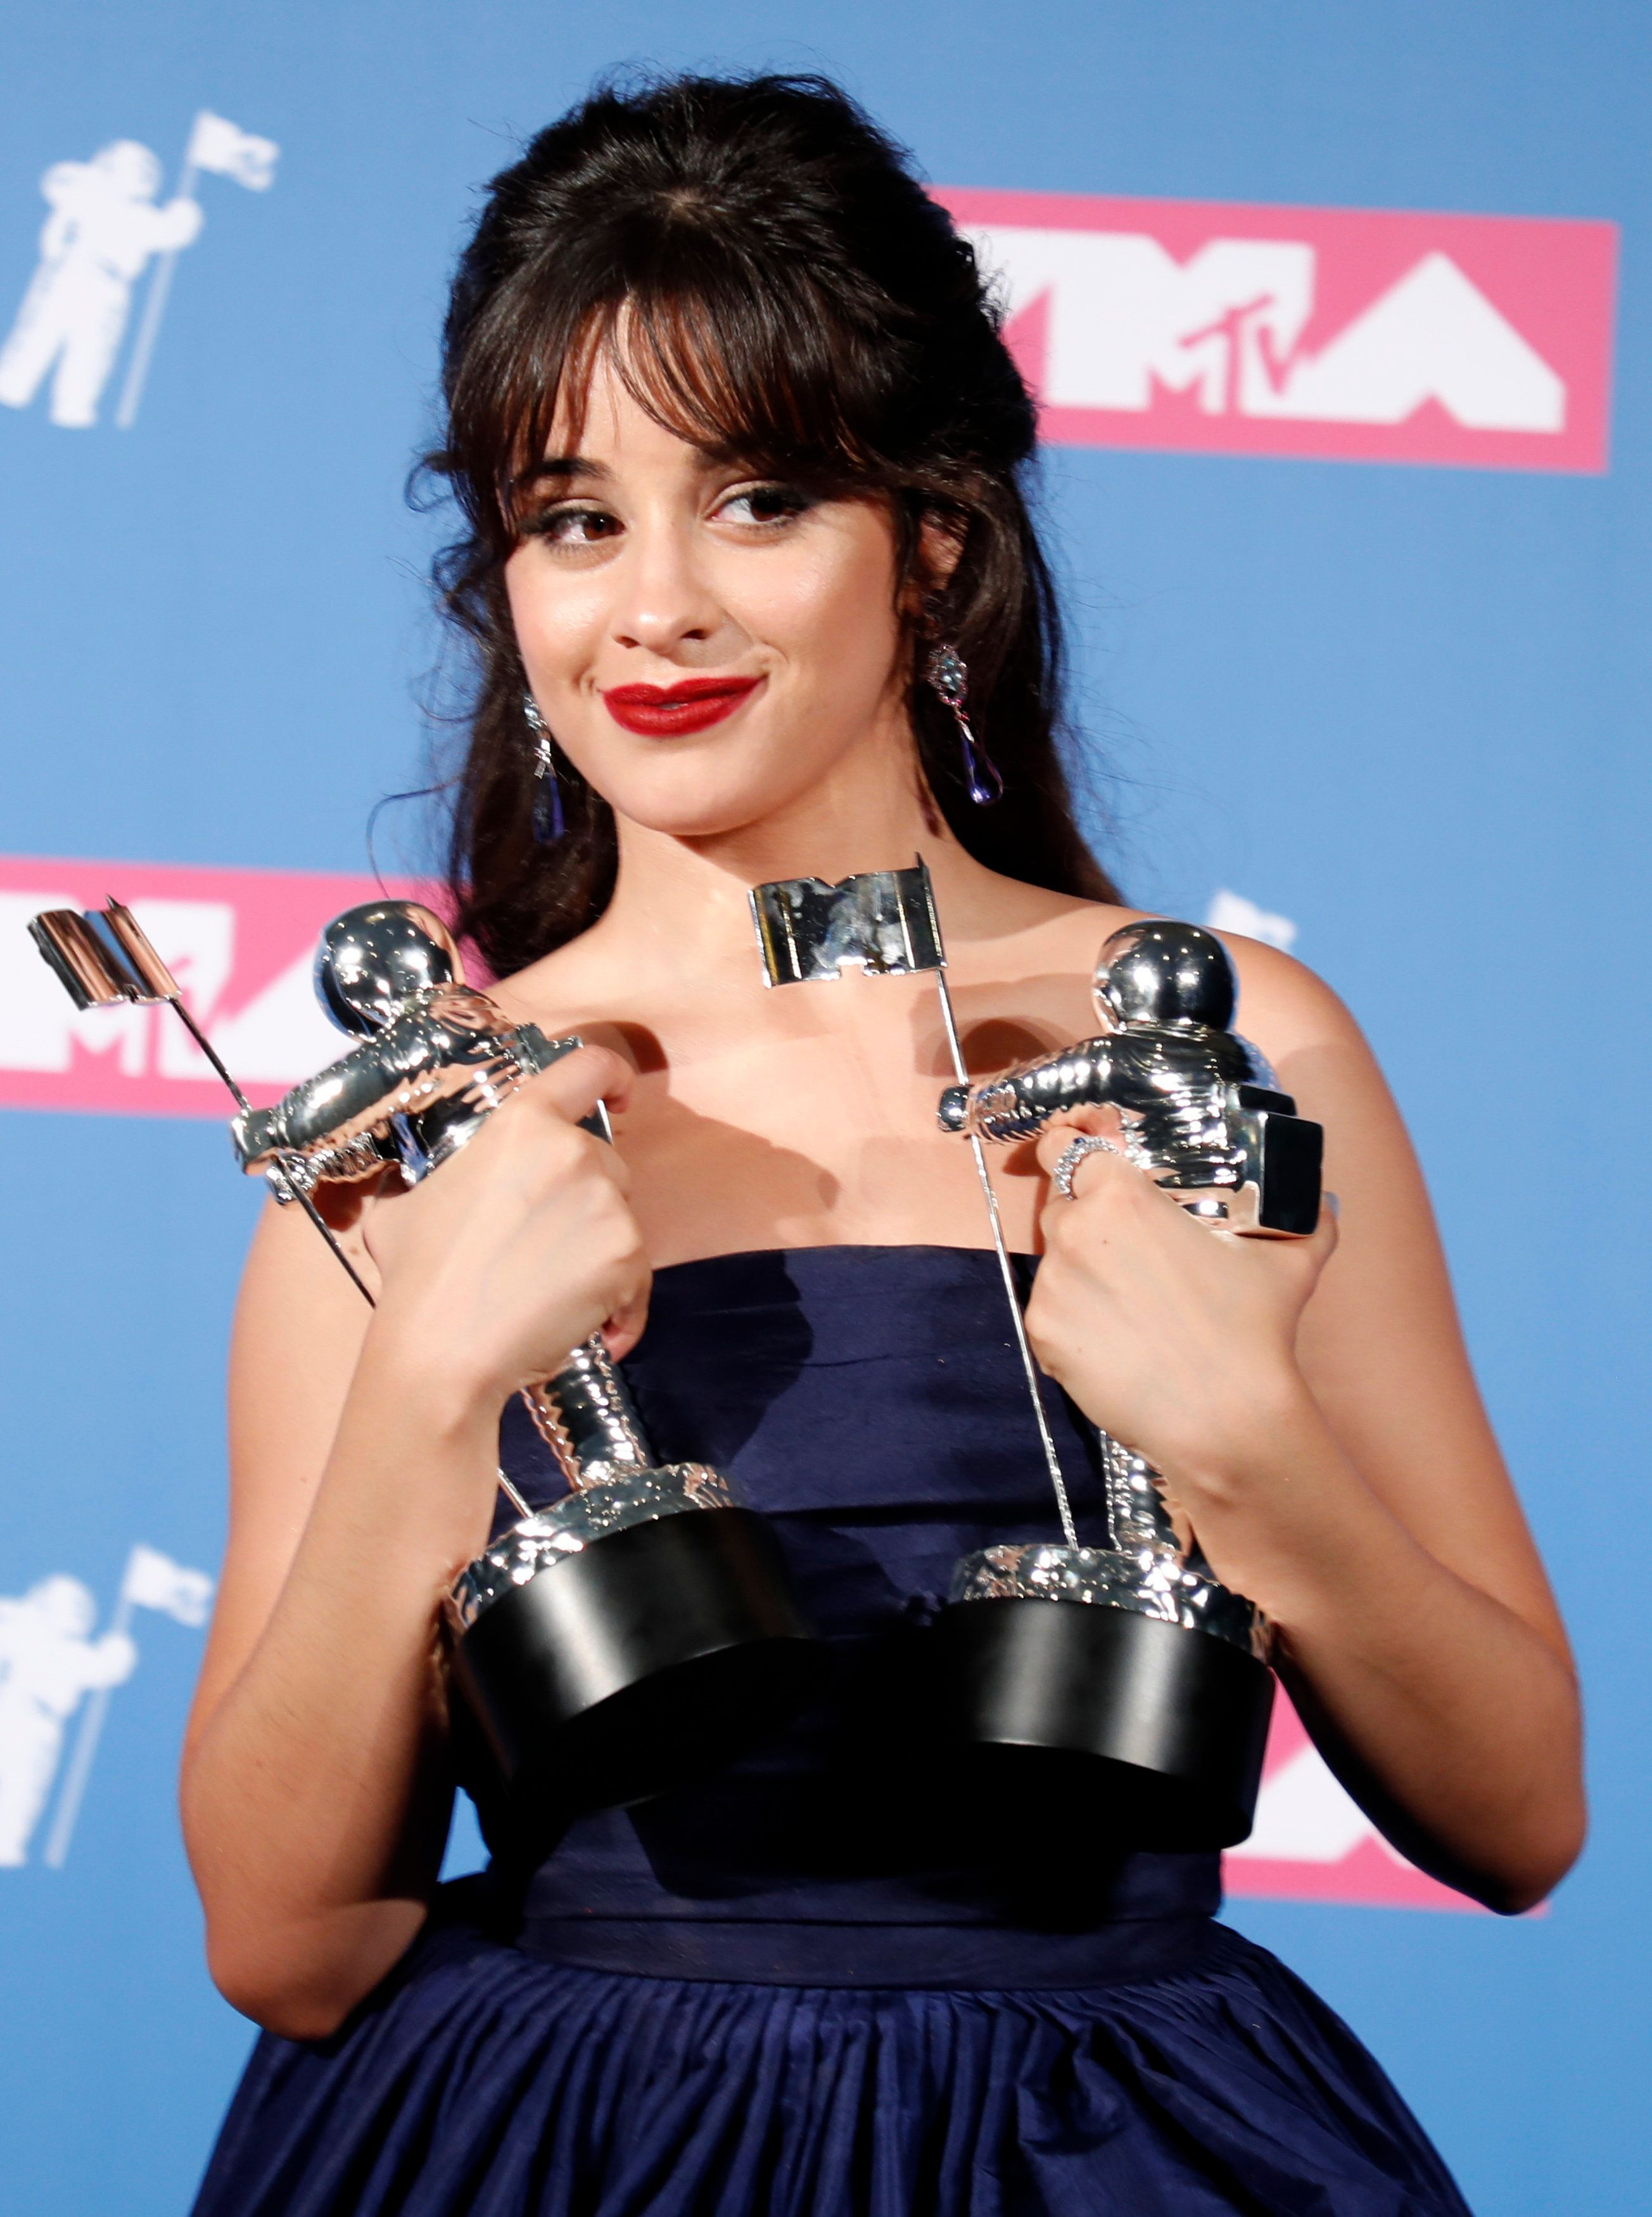 """2018 MTV Video Music Awards - Photo Room - Radio City Music Hall, New York, U.S., August 20, 2018. - Camila Cabello poses backstage with her awards for Artist of the Year and Video of the Year for """"Havana."""" REUTERS/Carlo Allegri"""